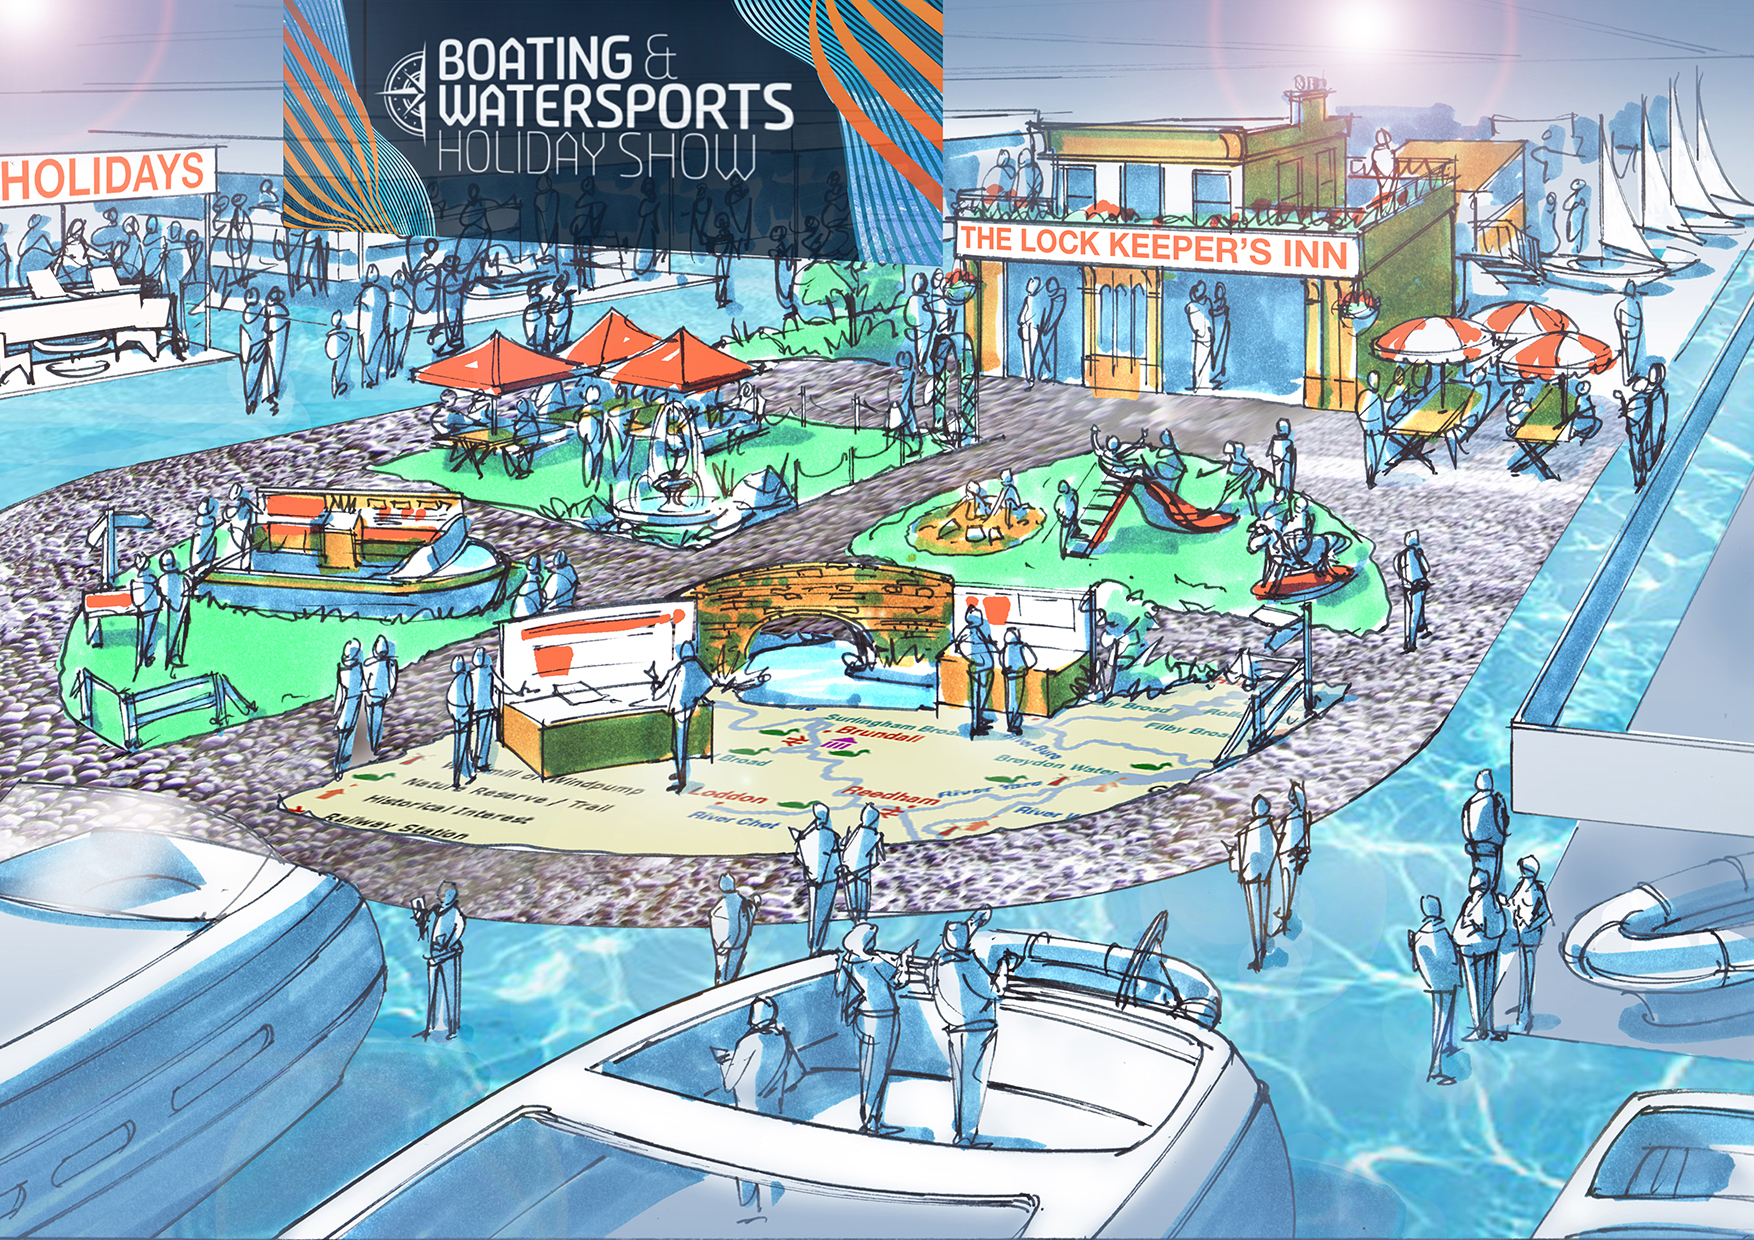 First attraction announced for new Boating and Watersports Holiday Show